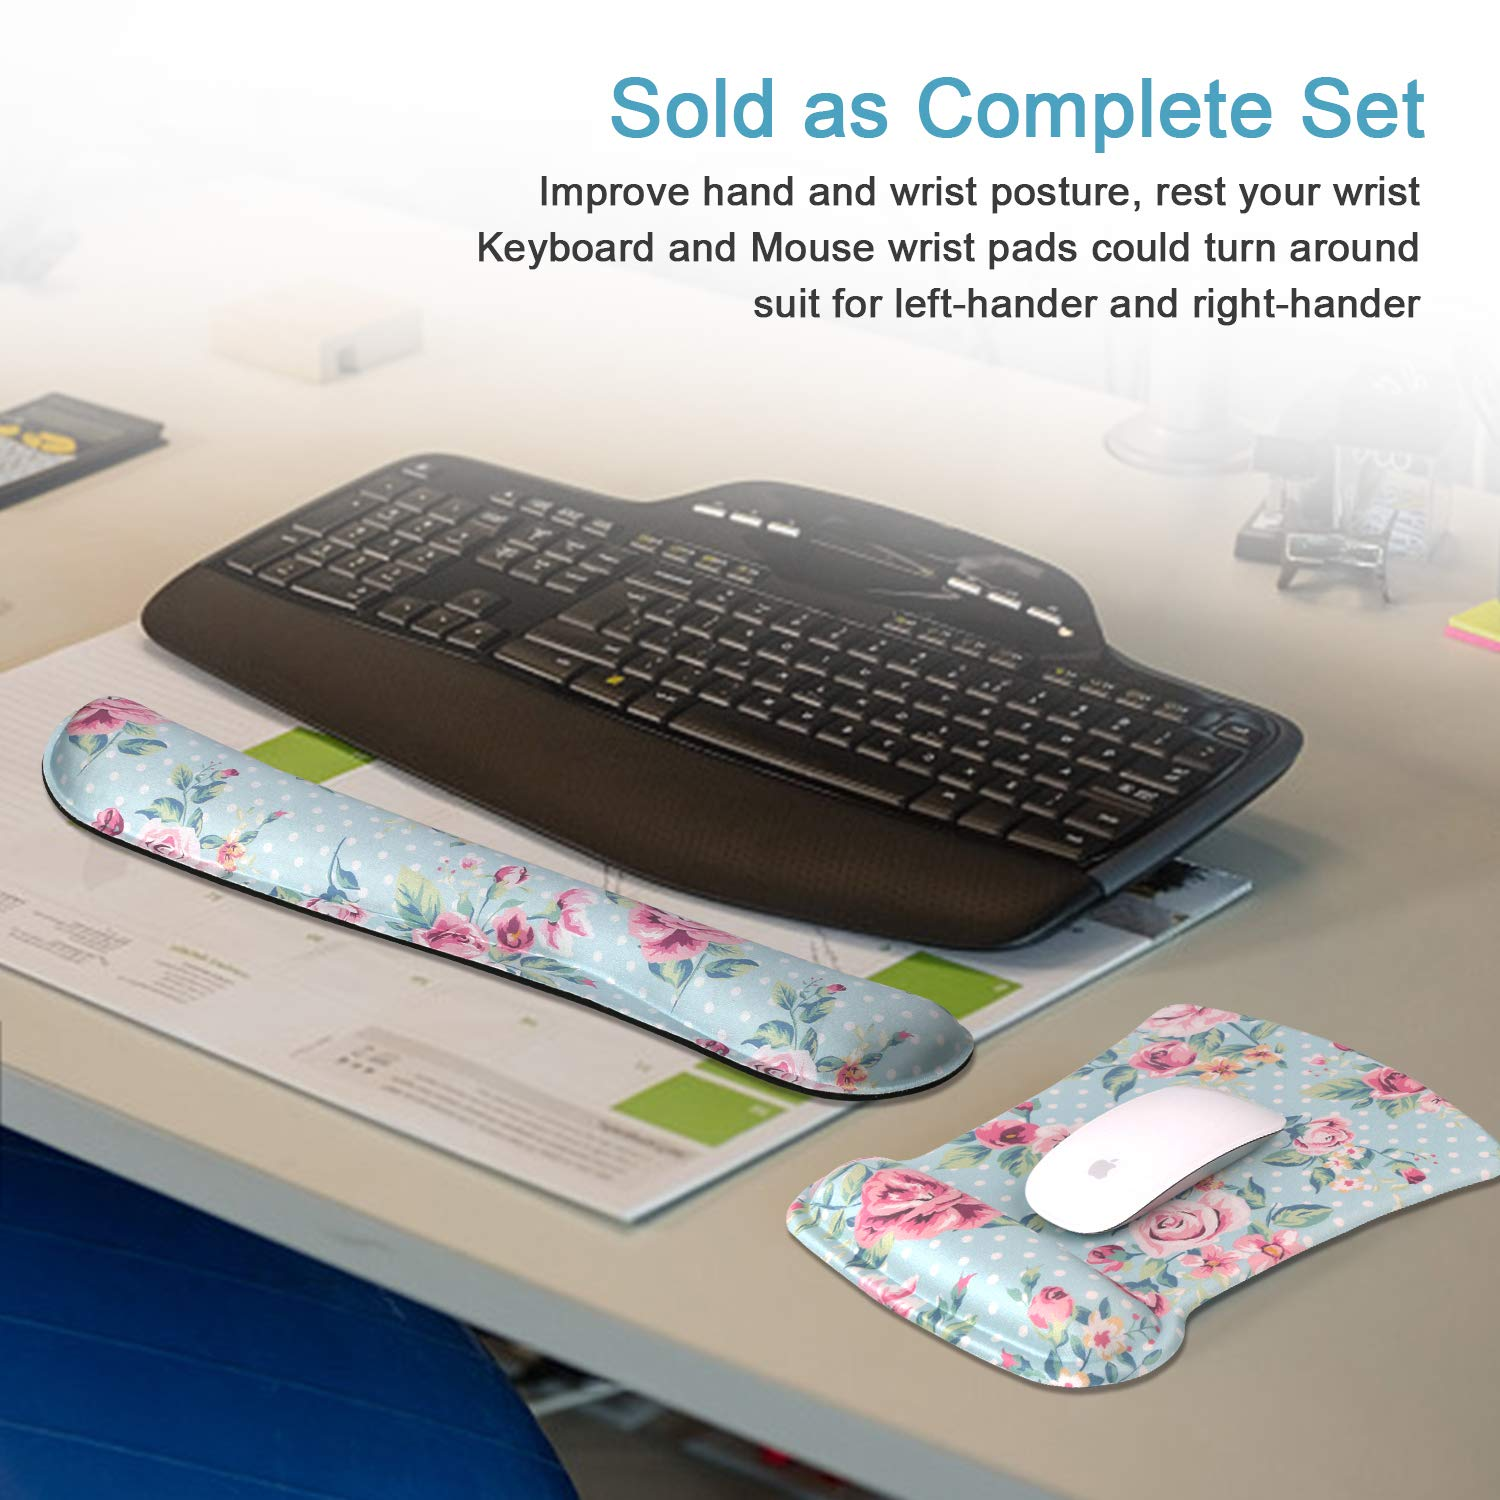 Laptop Easy Typing and Relieve Wrist Pain,Perfect for Gaming Office iCasso Keyboard Wrist Rest and Mouse Wrist Rest Pad Computer Butterfly Girl Ergonomic Support Made of Memory Foam